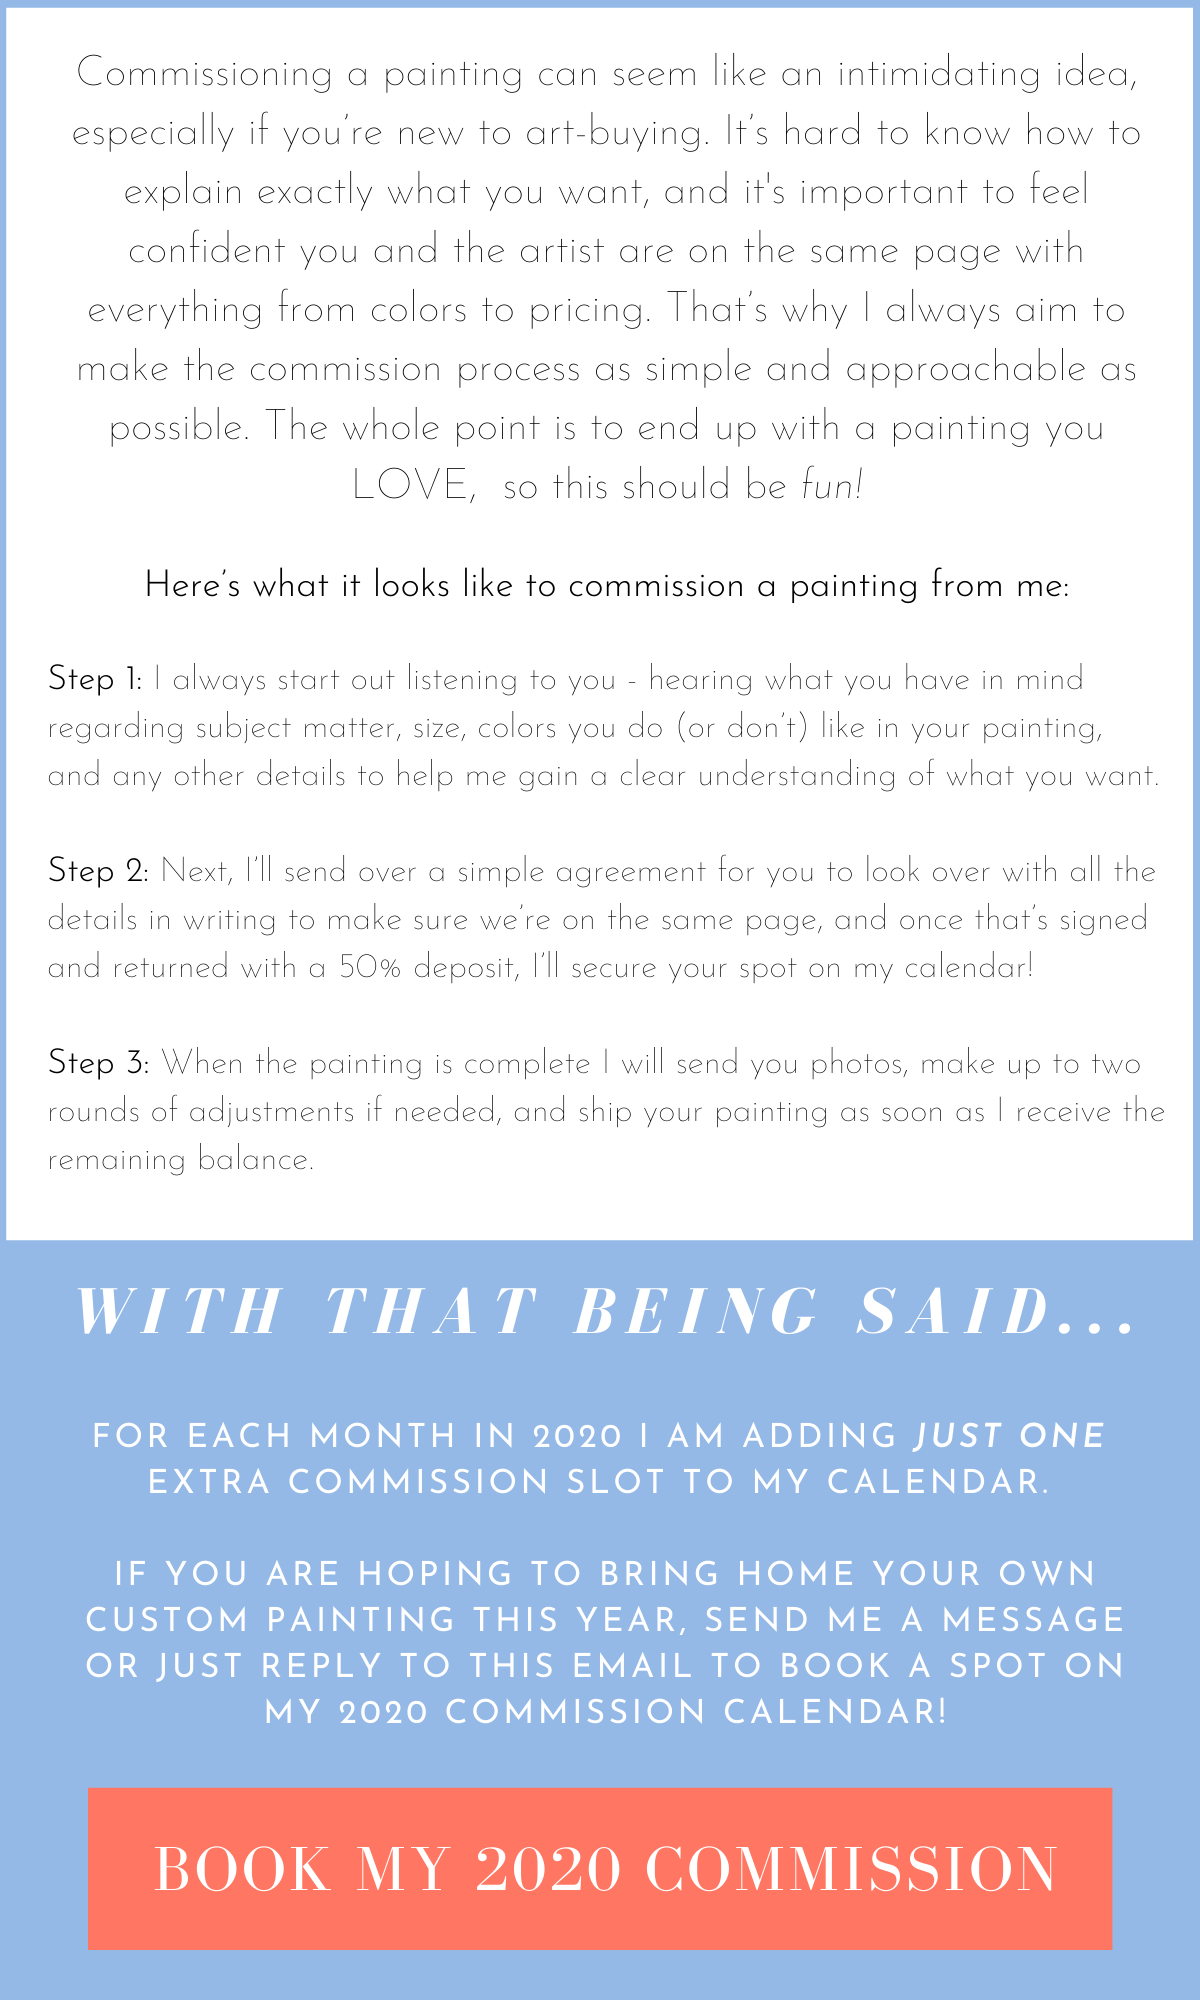 Commissioning a painting can seem like an intimidating idea, especially if you're new to art-buying. It's hard to know how to explain exactly what you want, and you want to feel confident you and the artist are on th.png